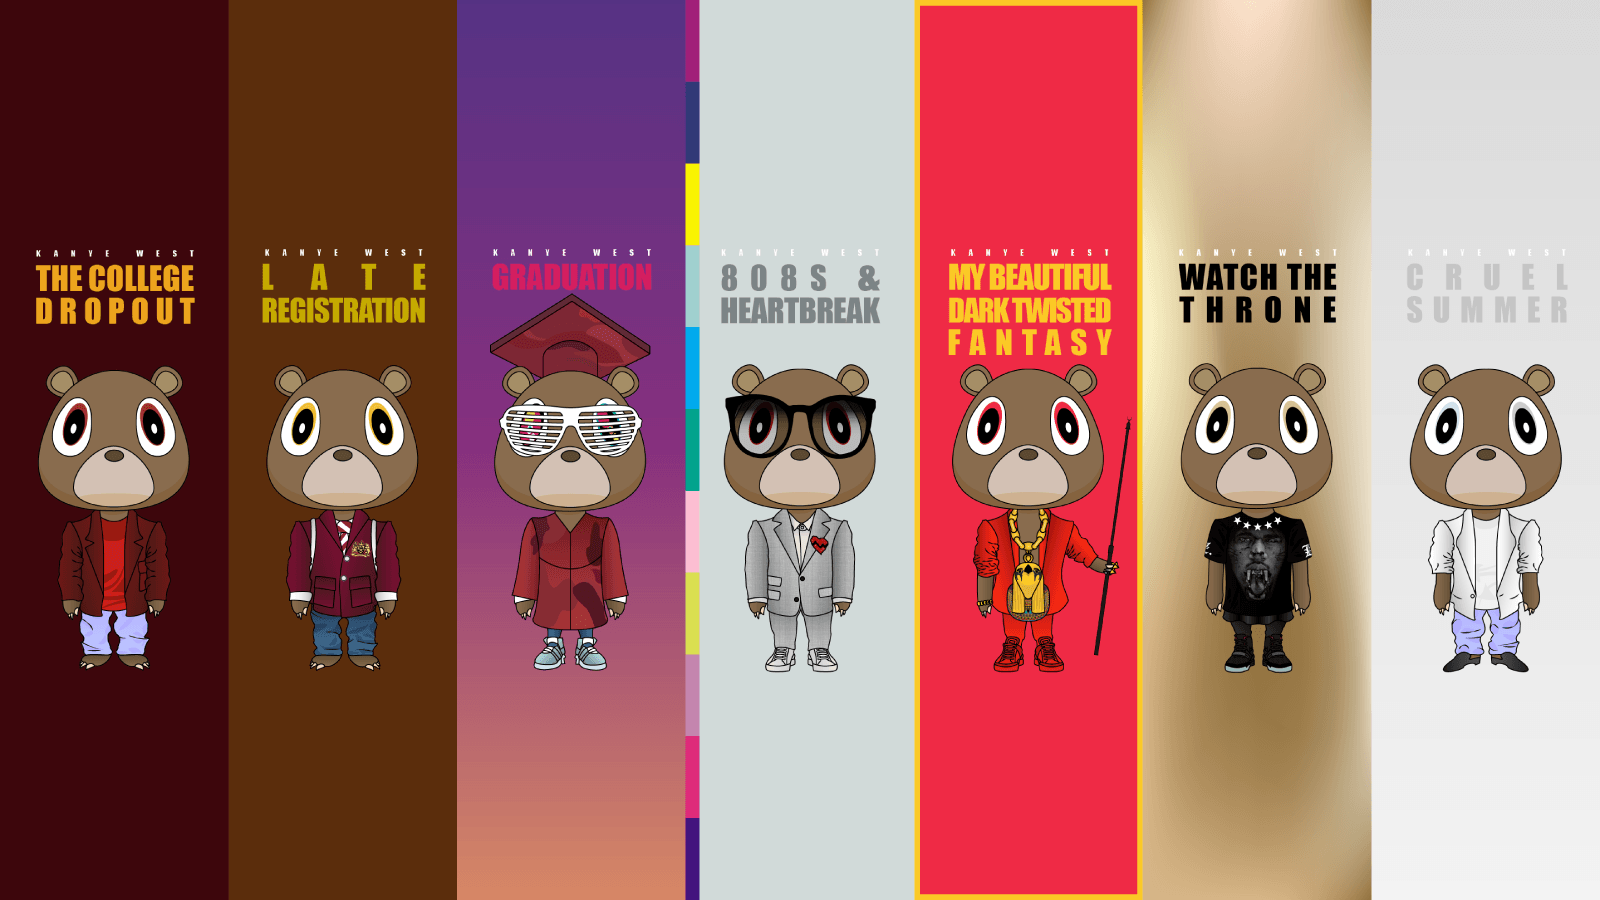 Image For > Kanye West Graduation Wallpapers